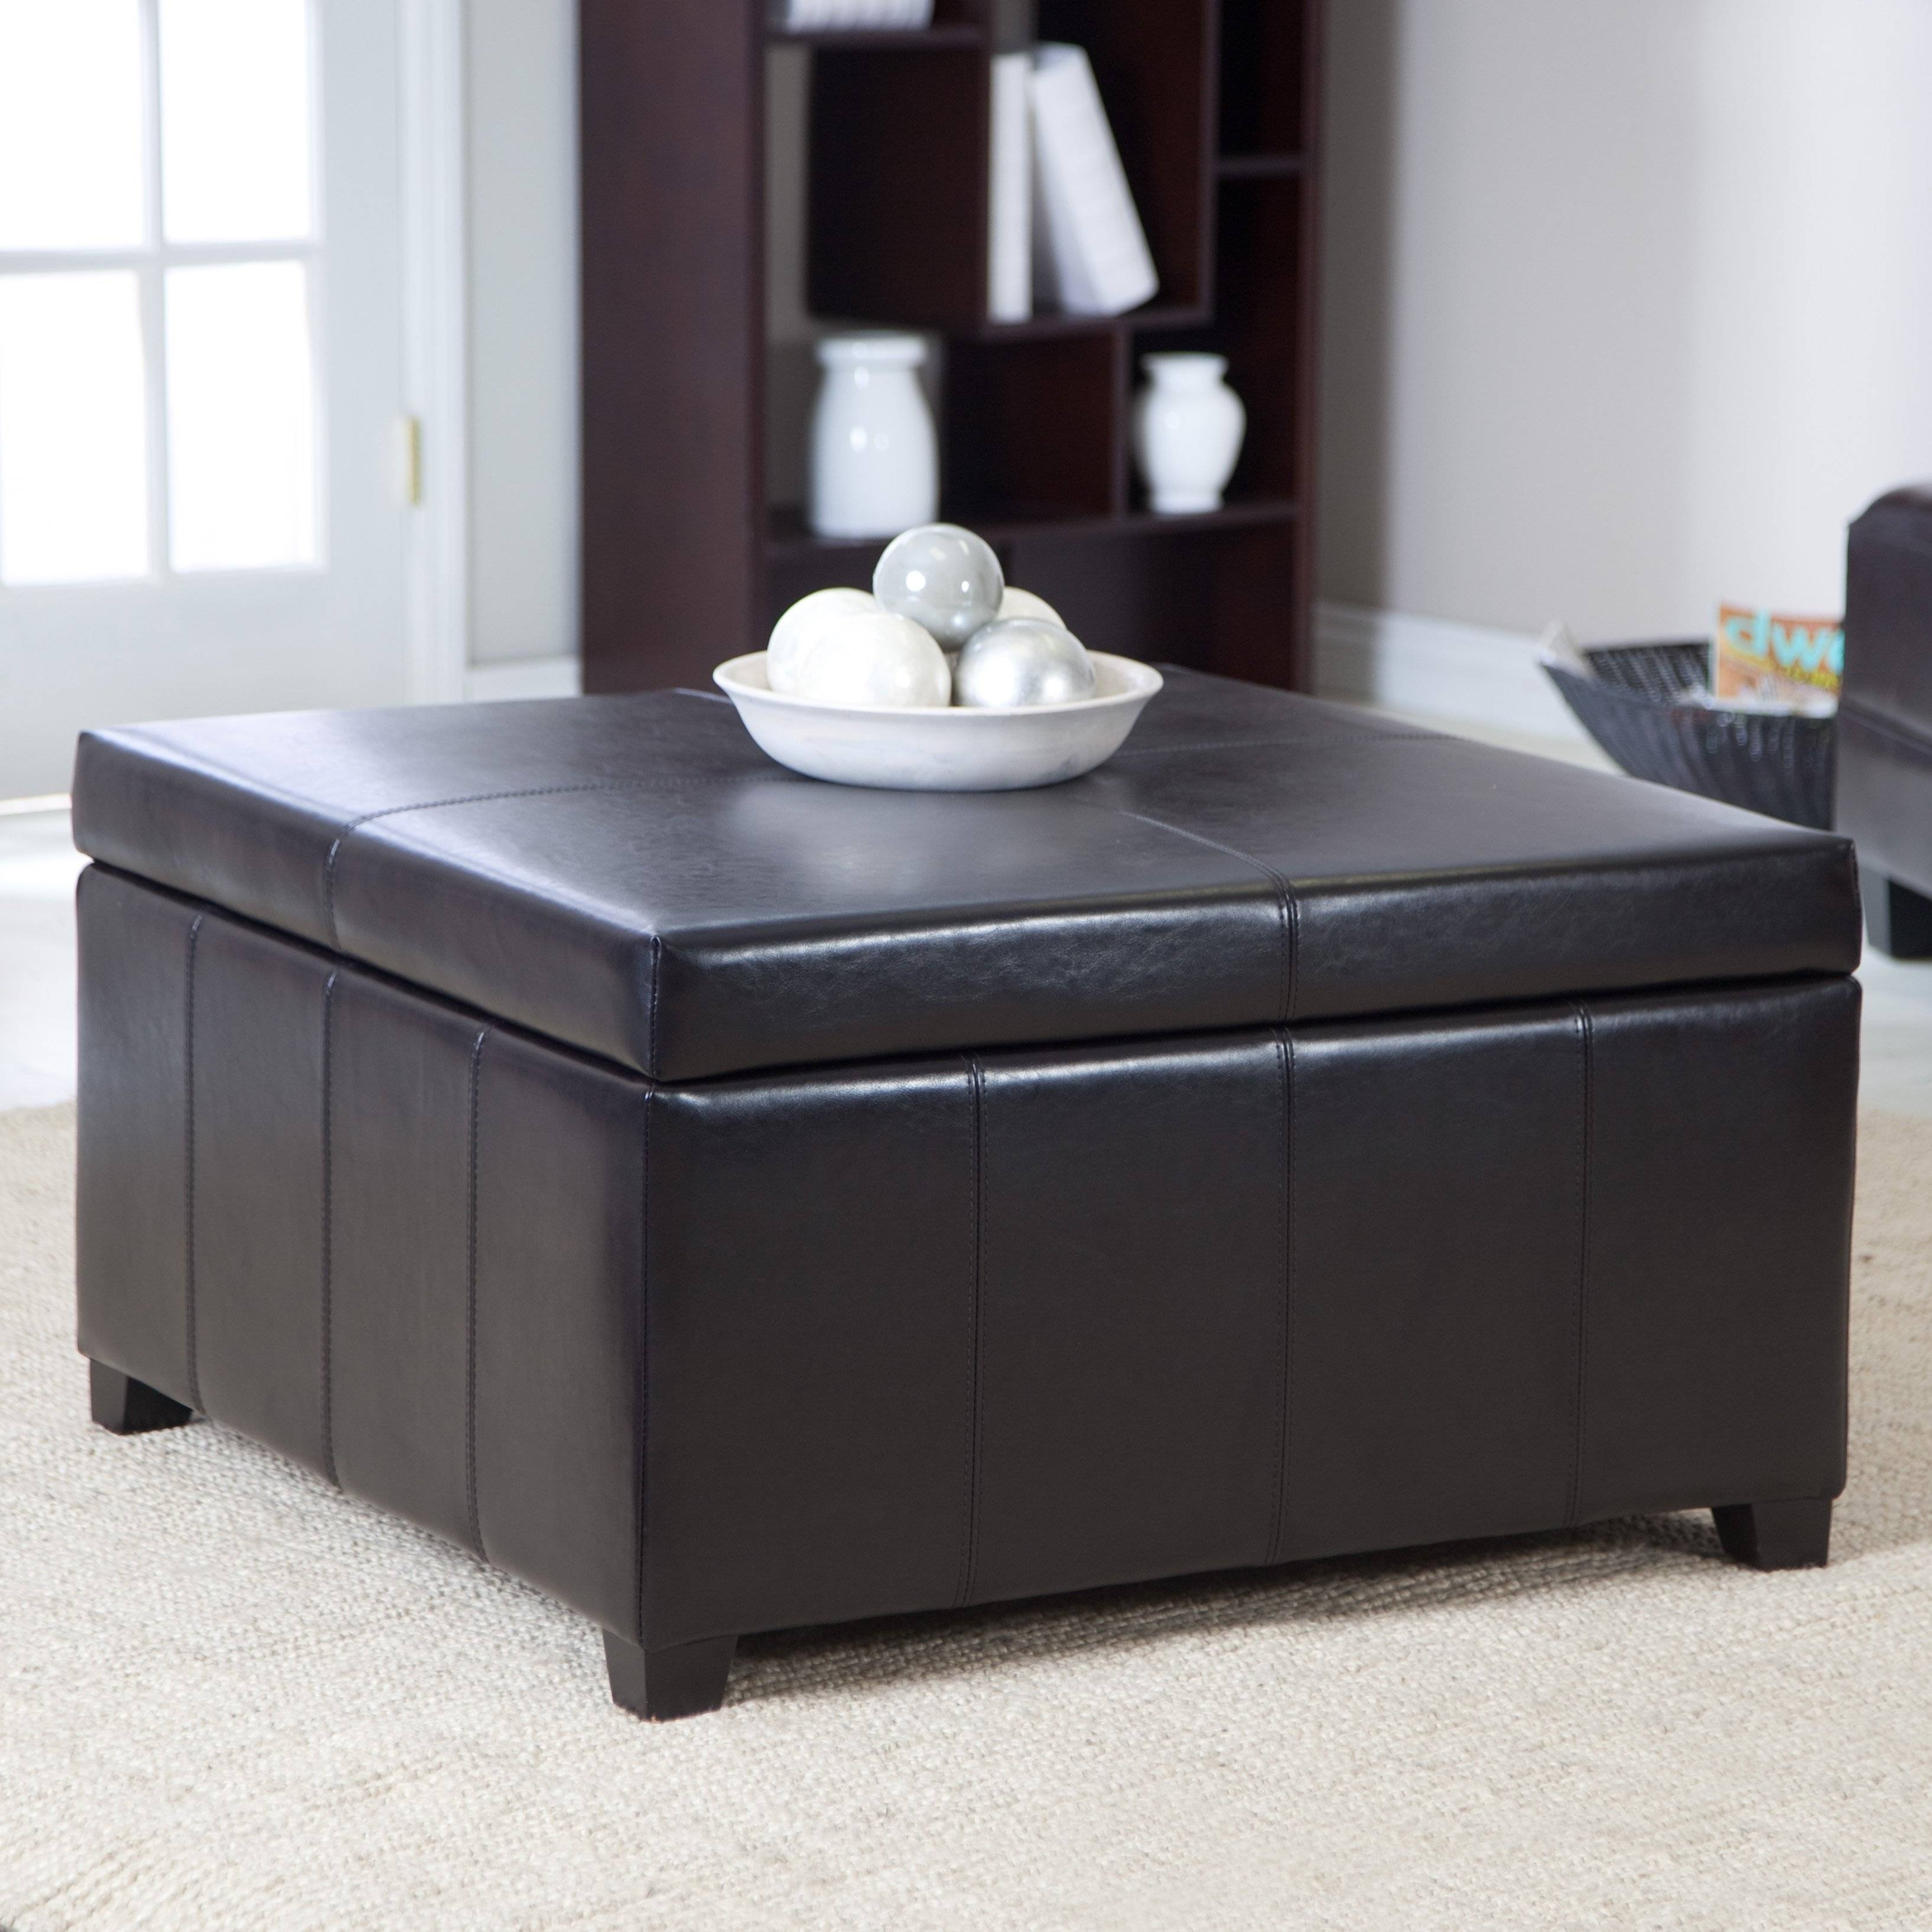 Coffee Table: Appealing Square Storage Ottoman Coffee Table regarding Brown Leather Ottoman Coffee Tables (Image 14 of 30)